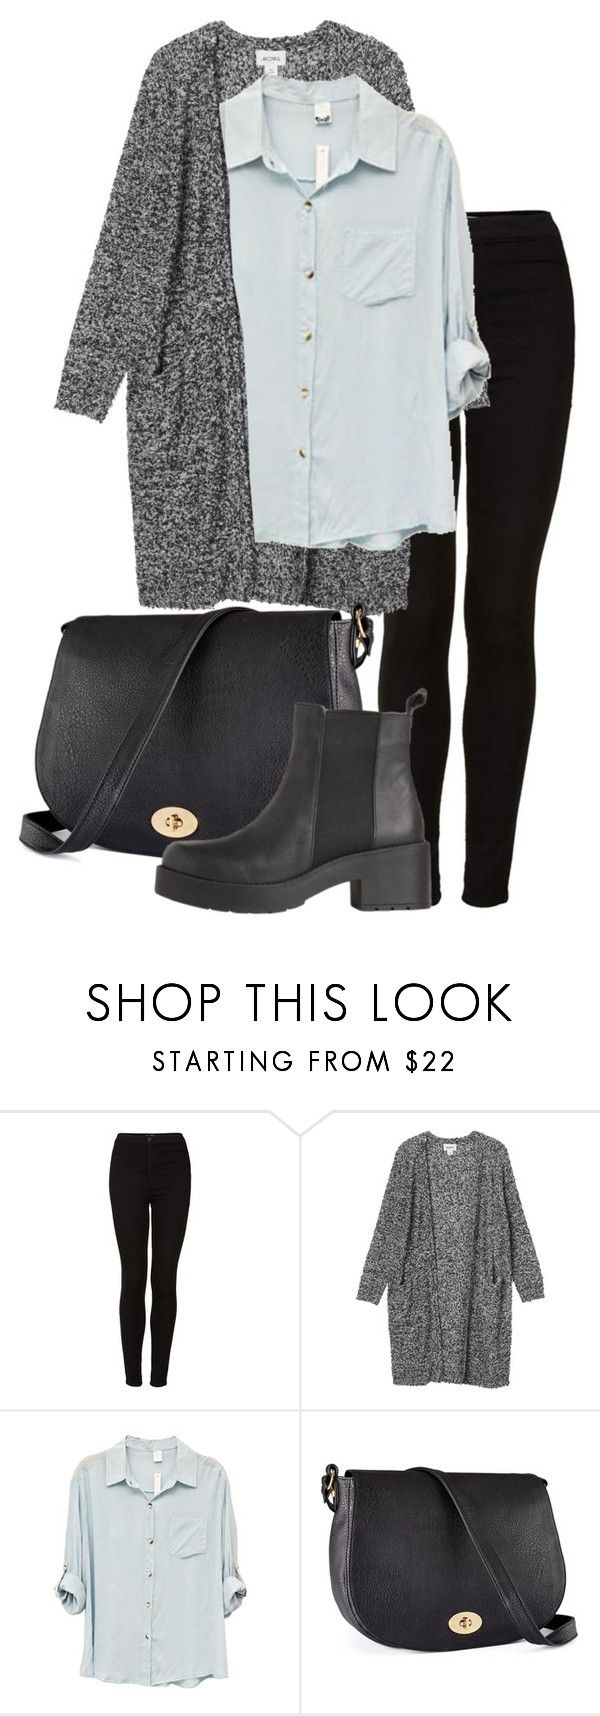 """Untitled #12"" by bezza17 ❤ liked on Polyvore featuring Topshop, Monki, H&M, eleanorcalderstyle, perrieedwardsstyle and gemmastyles"